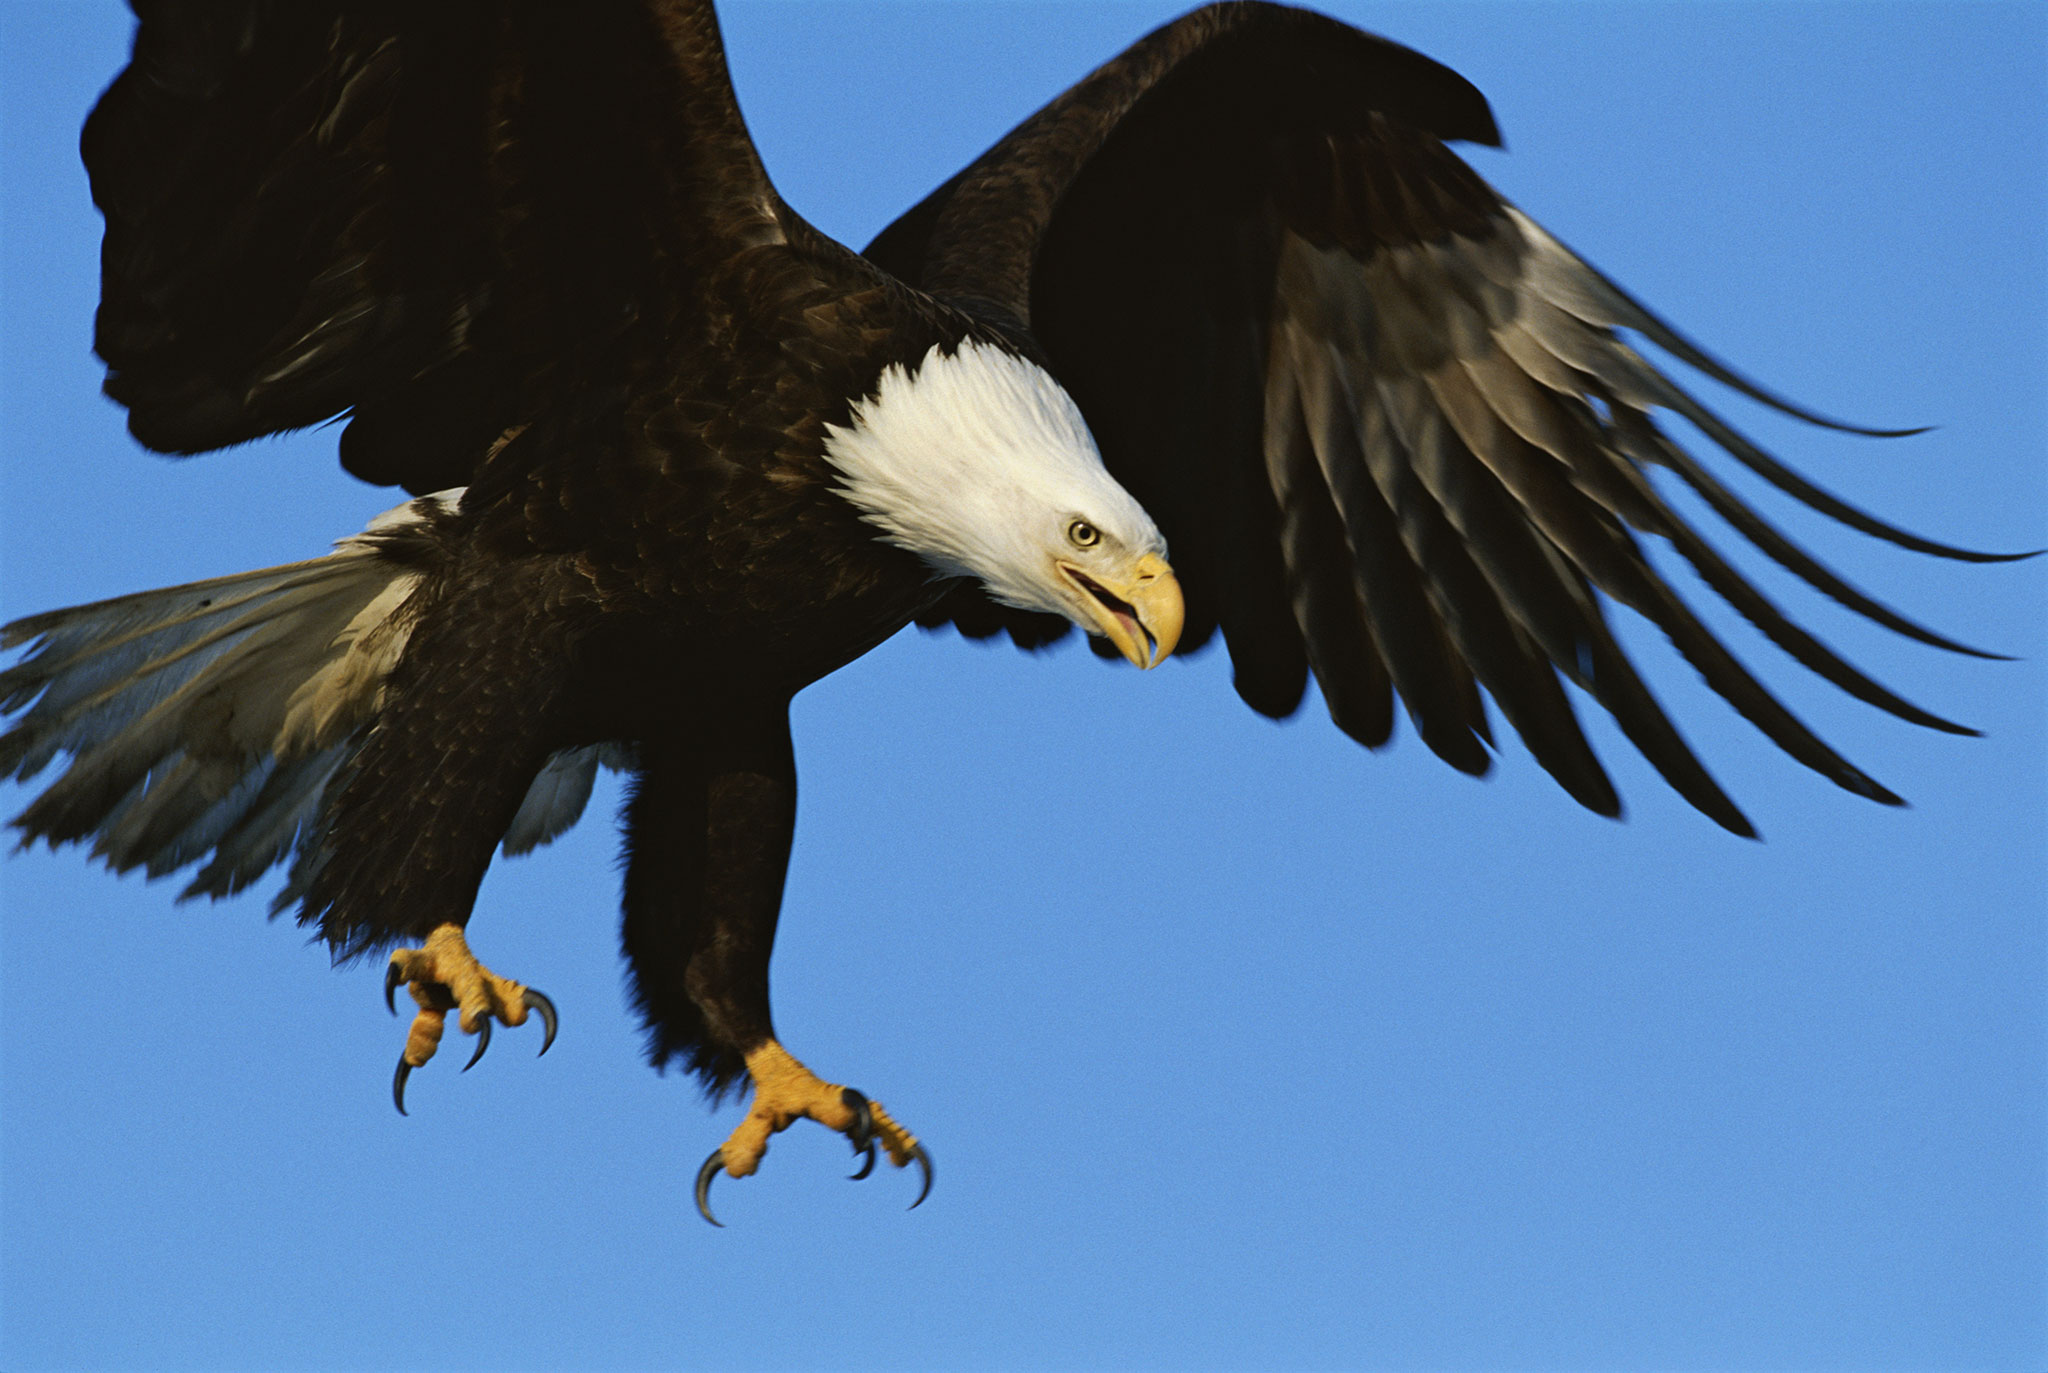 Let's Not Force Eagles to Fight Rogue Drones